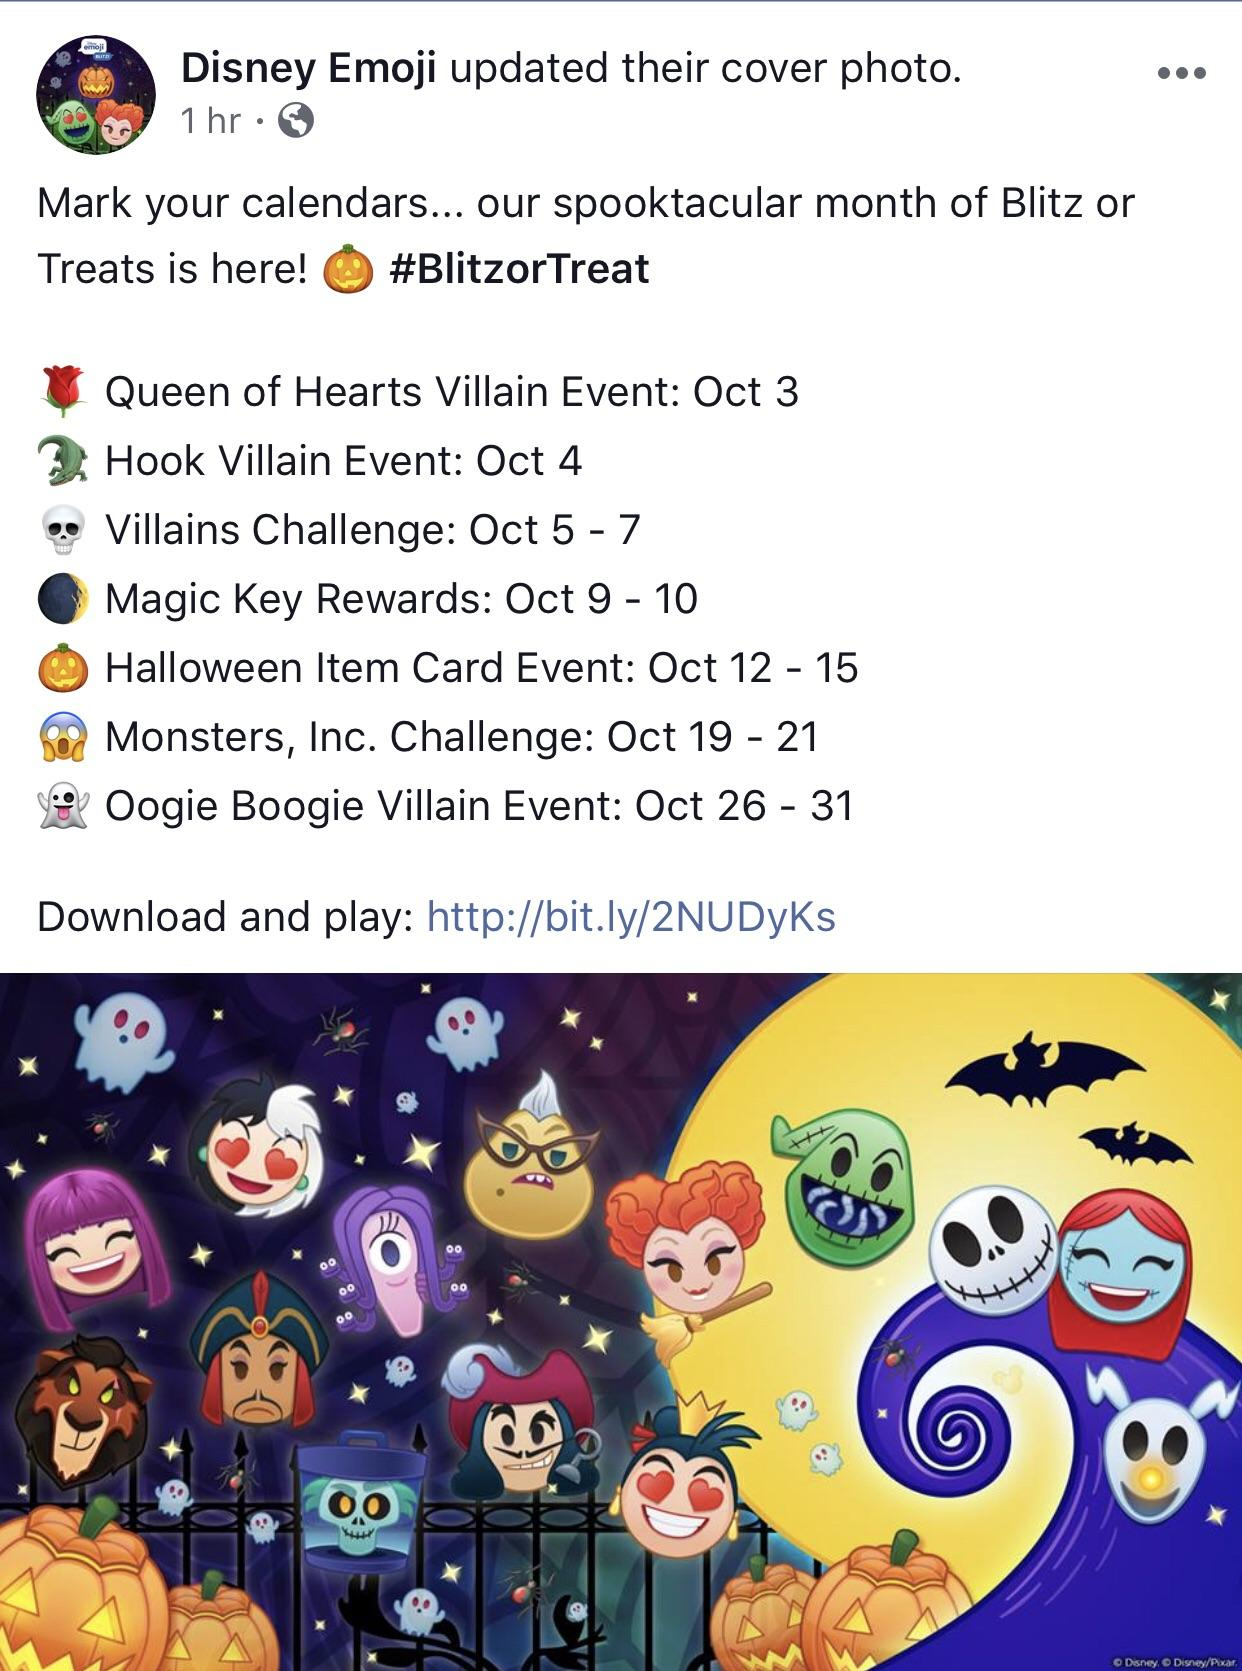 Emoji Blitz Event Calendar | Calendar For Planning with Disney Emoji Blitz Calendar